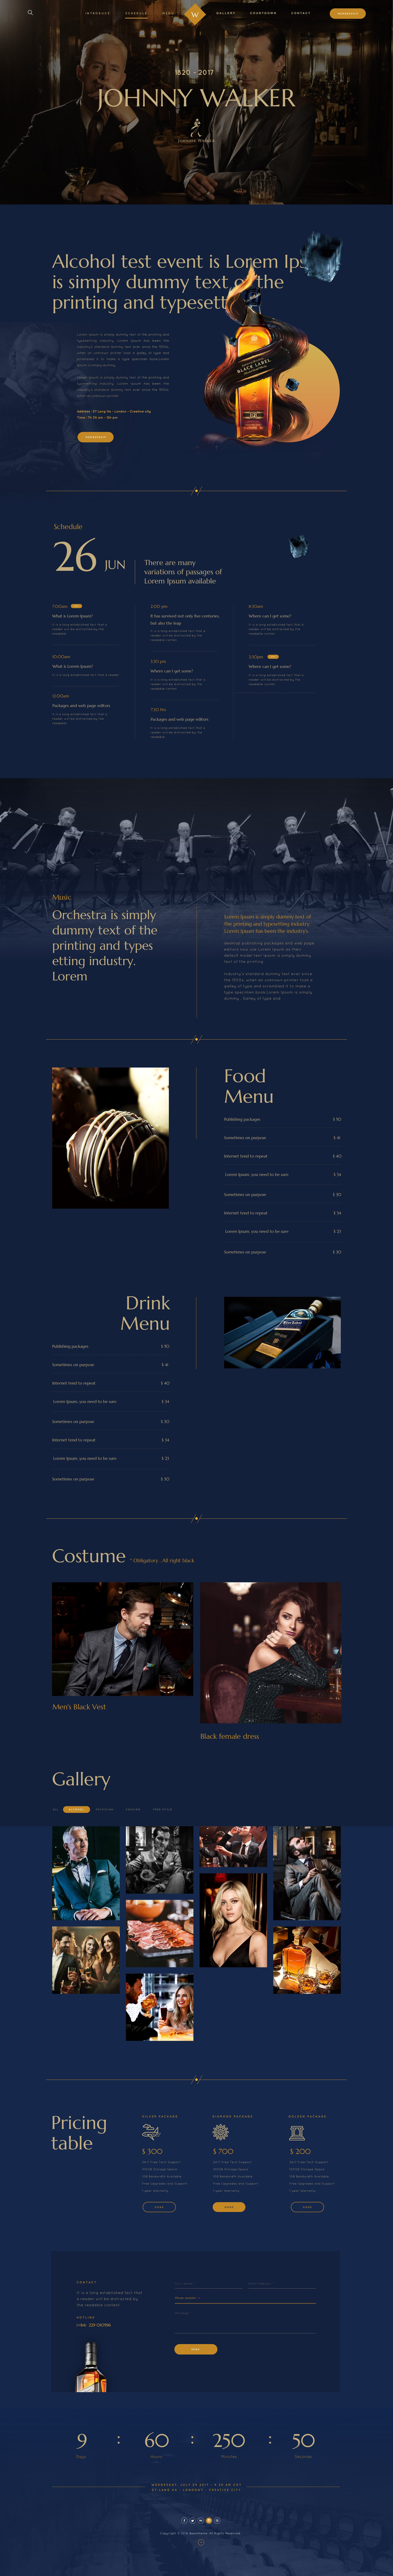 Private Party - Landing Page For Event - BeauPress